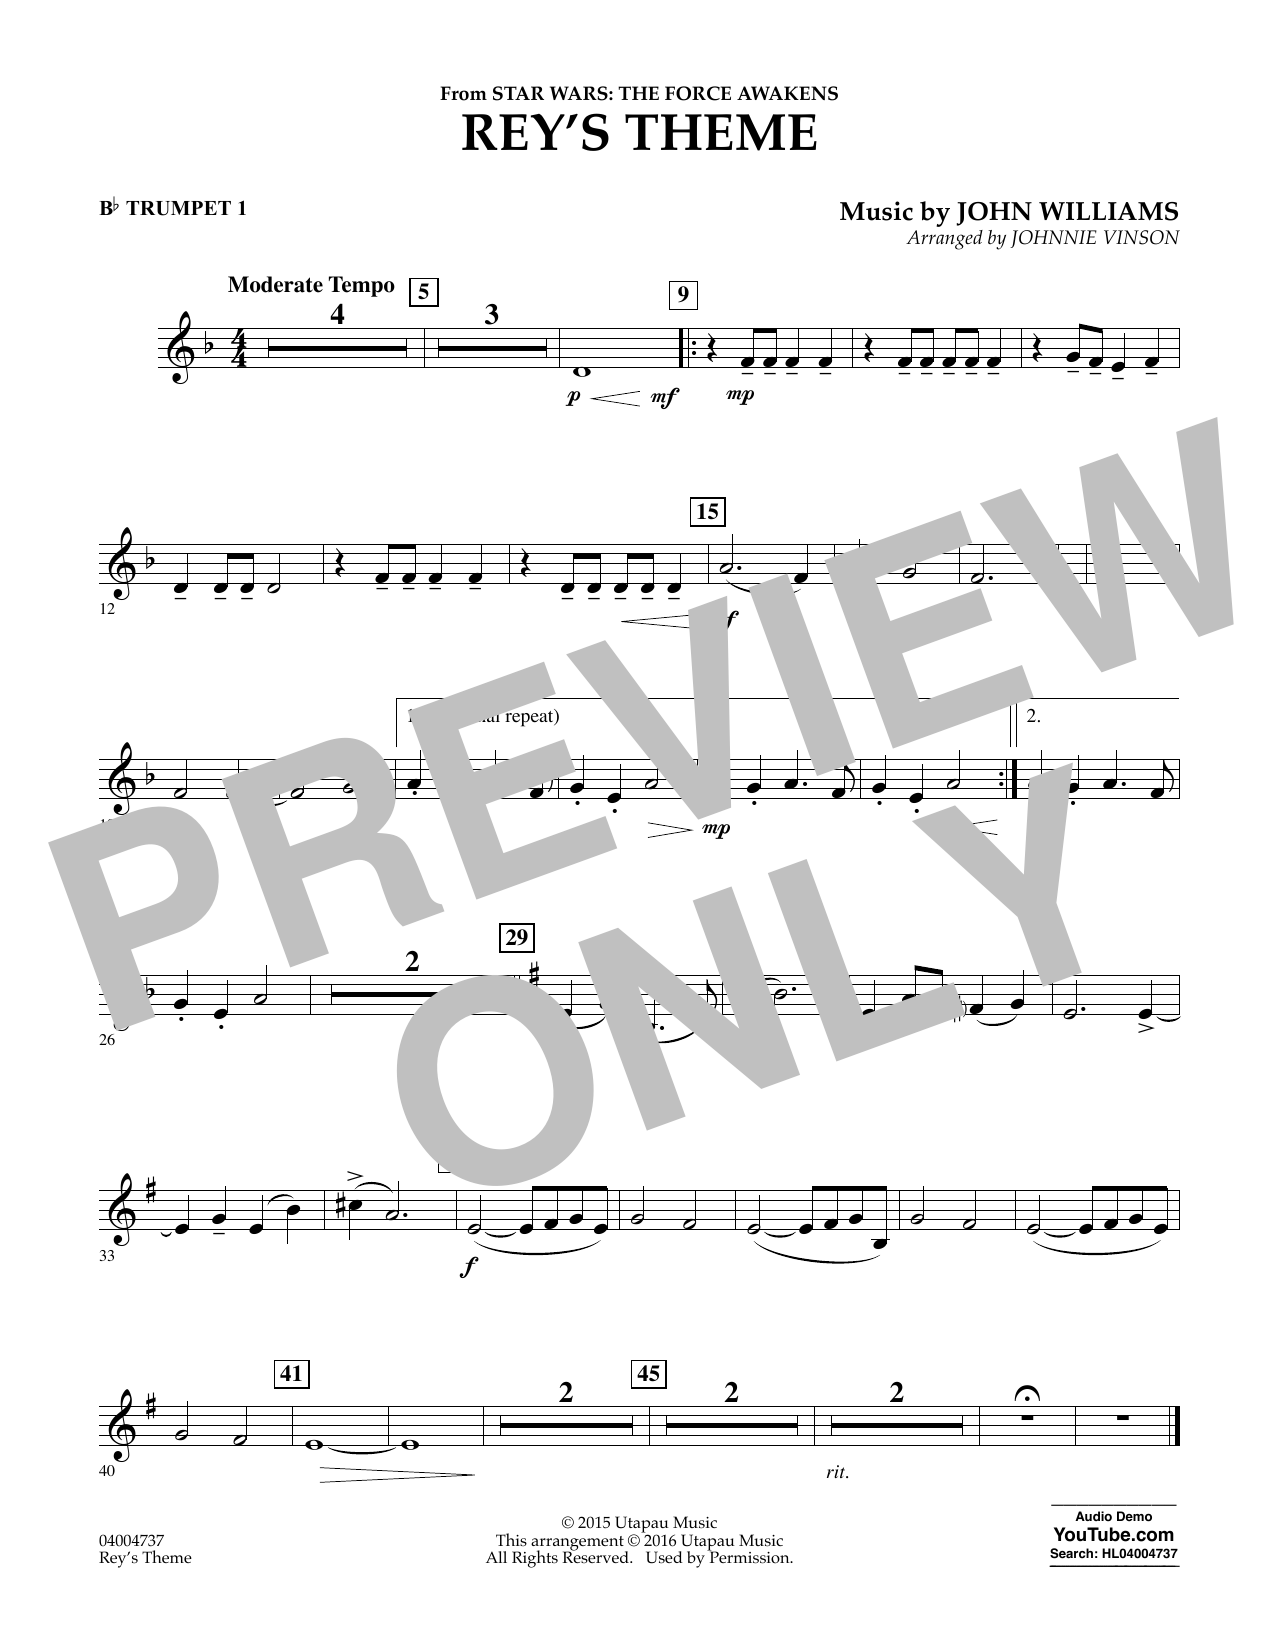 Rey's Theme (from Star Wars: The Force Awakens) - Bb Trumpet 1 (Concert Band)